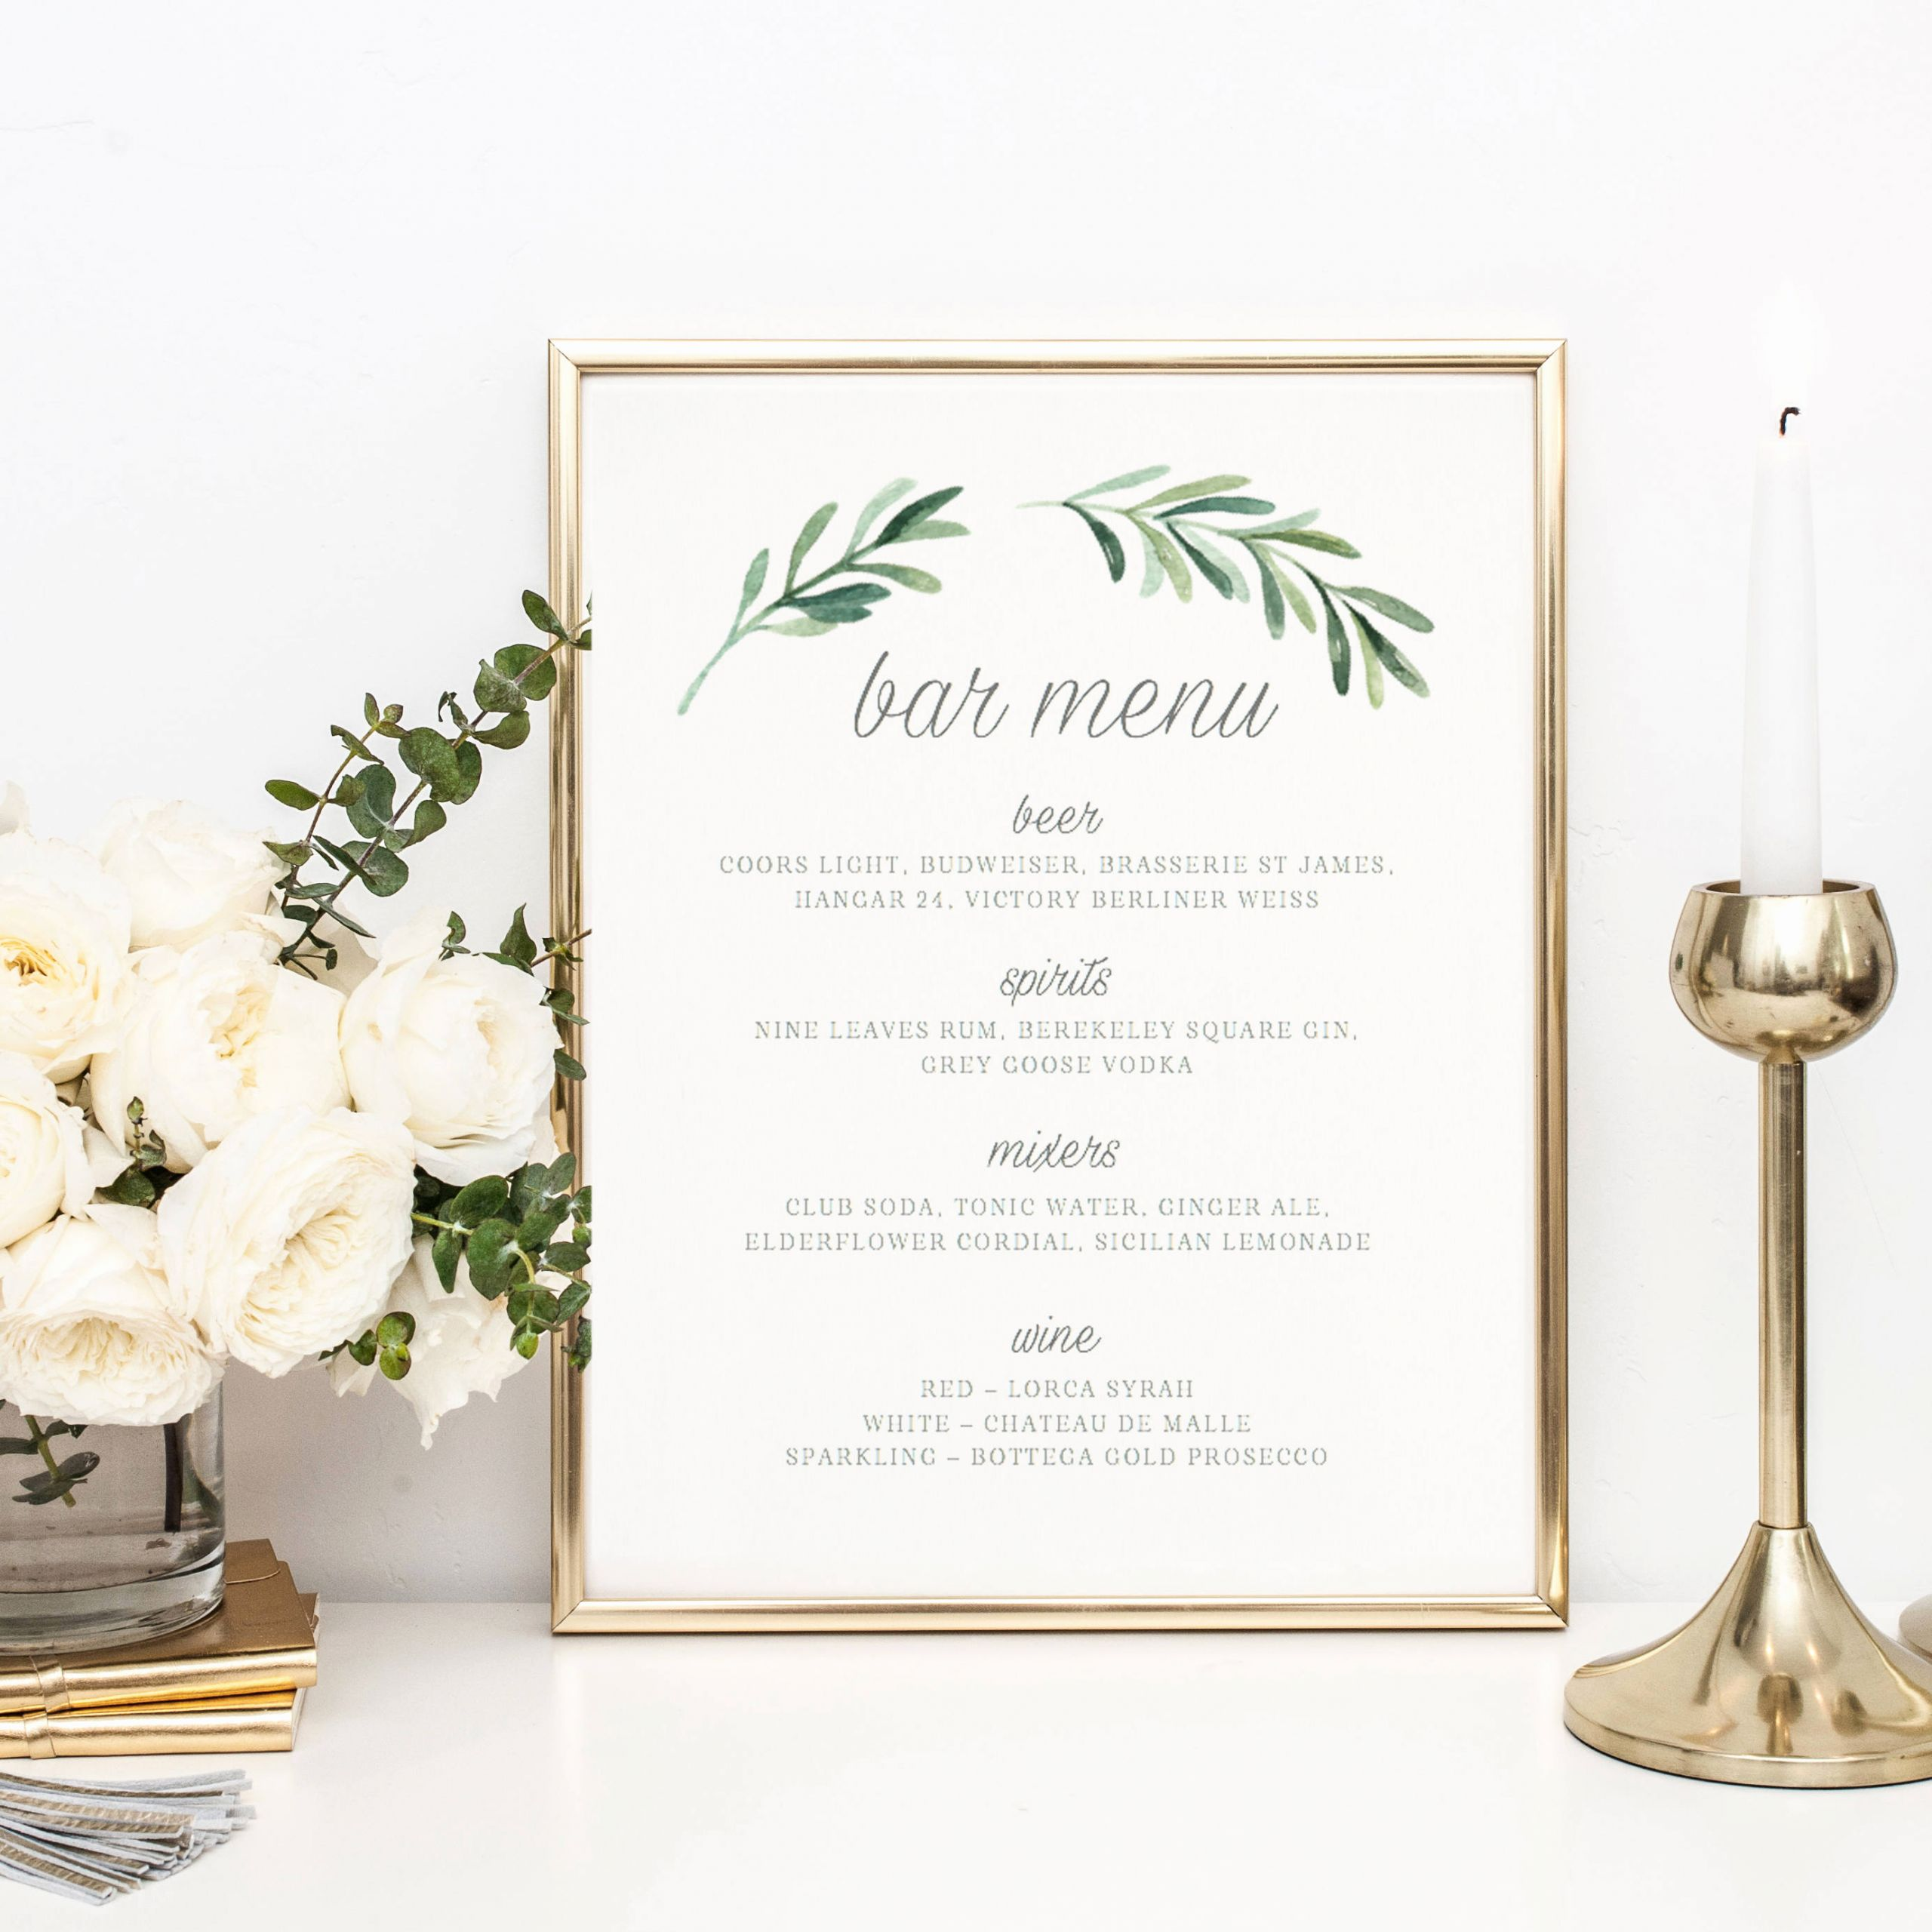 Wedding Drink Menu Template Beautiful Wedding Bar Menu Template Drink Sign Printable Bar Menu